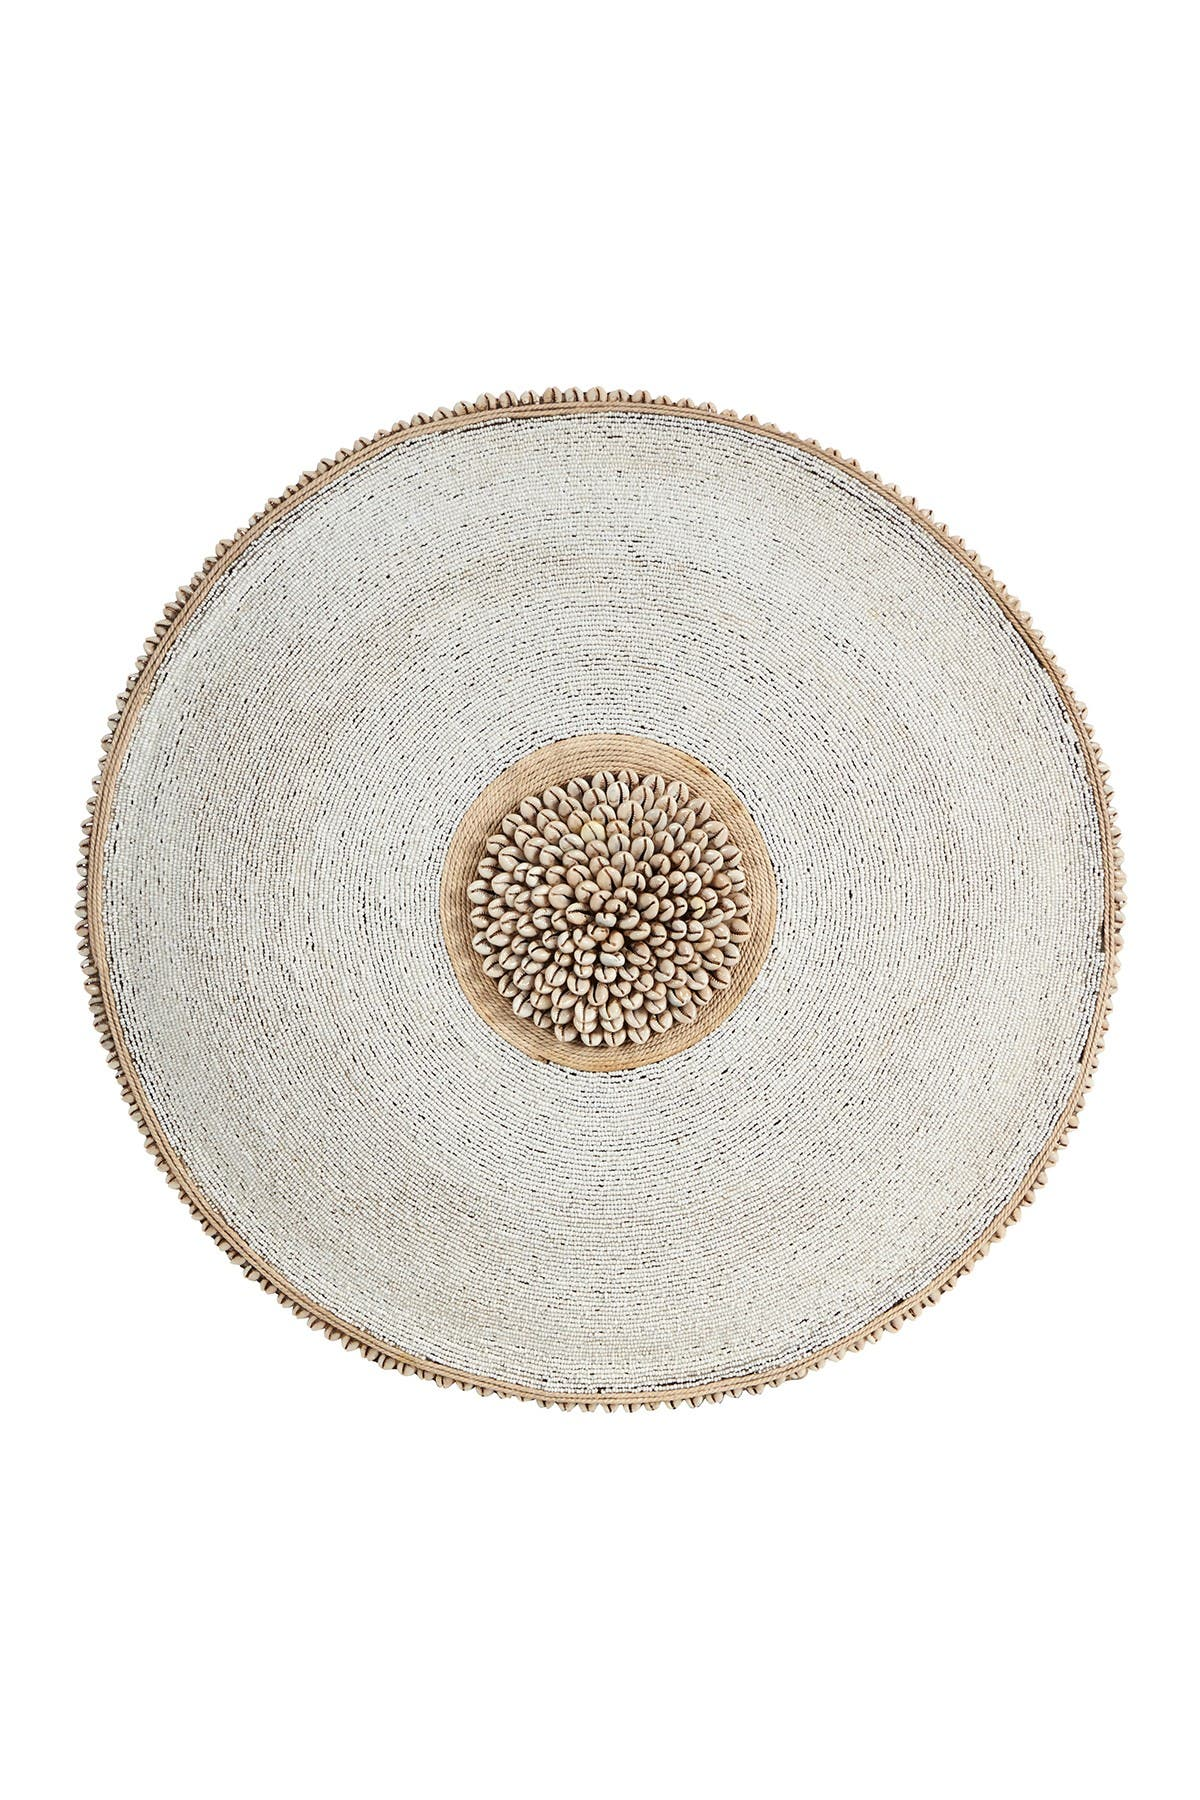 Image of Willow Row Large Round Hand-Carved Baobab Wood - Cowrie Shell & White Beaded Shield